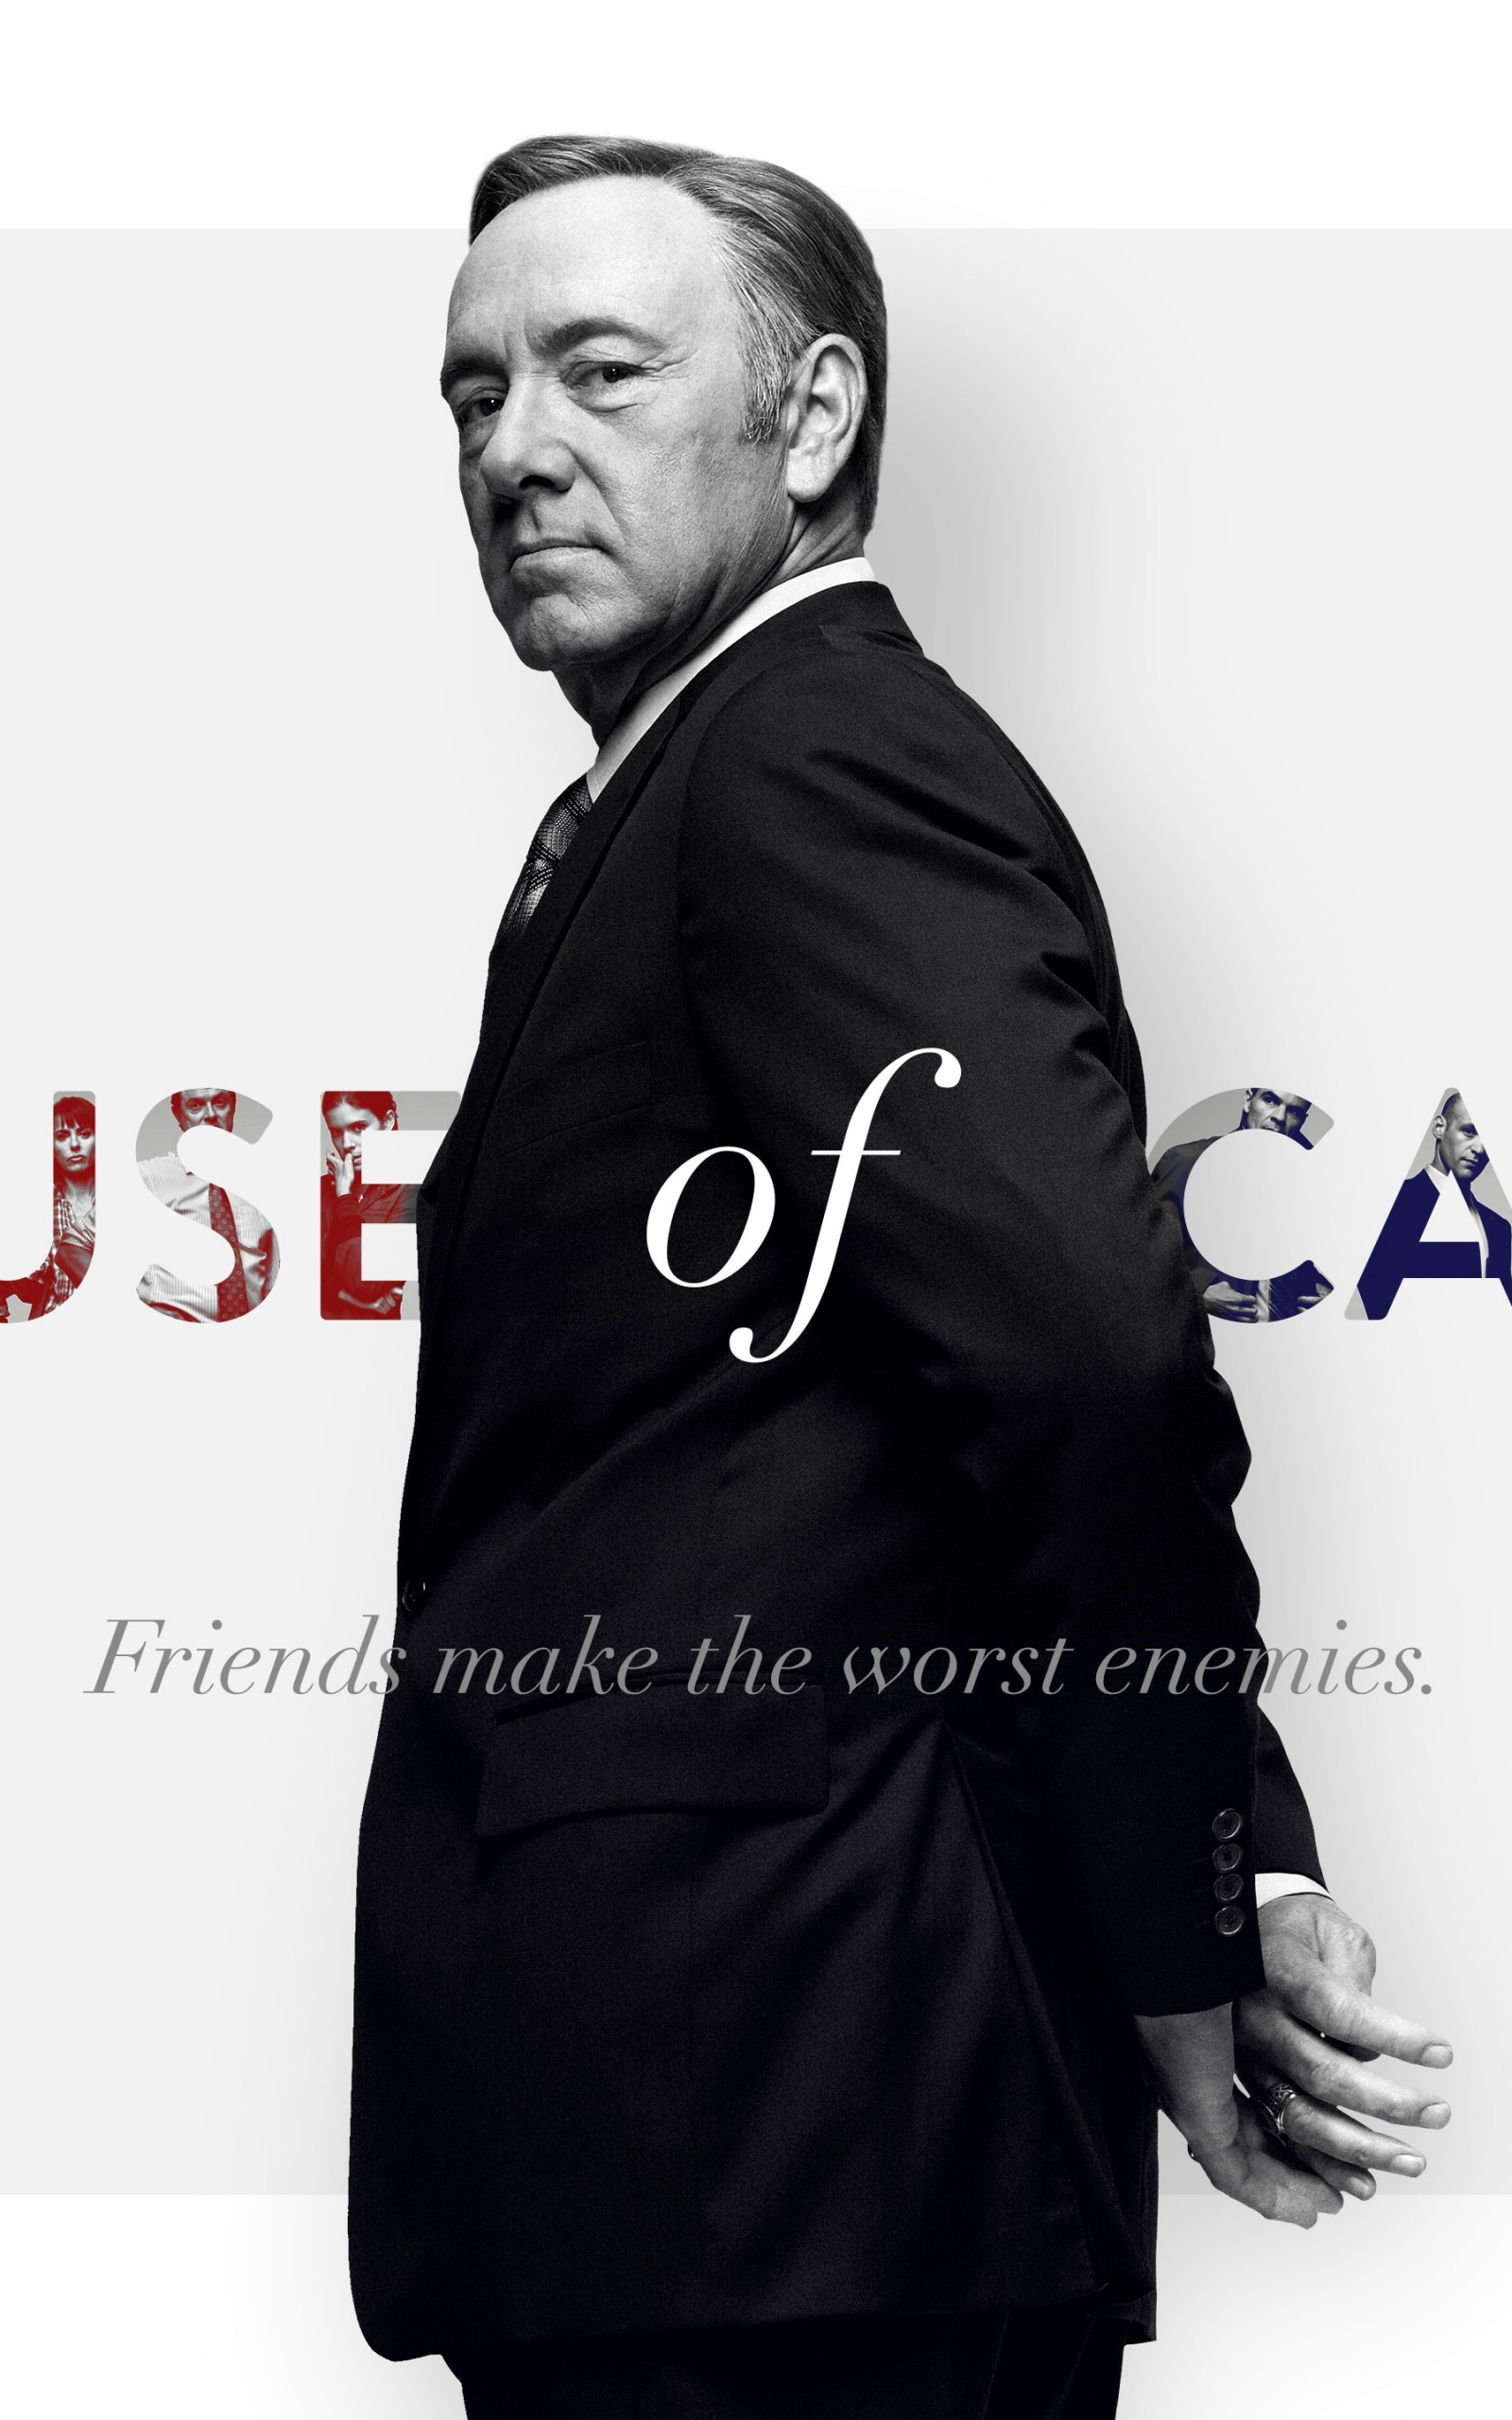 Frank Underwood - House of Cards Wallpaper for Amazon Kindle Fire HDX 8.9